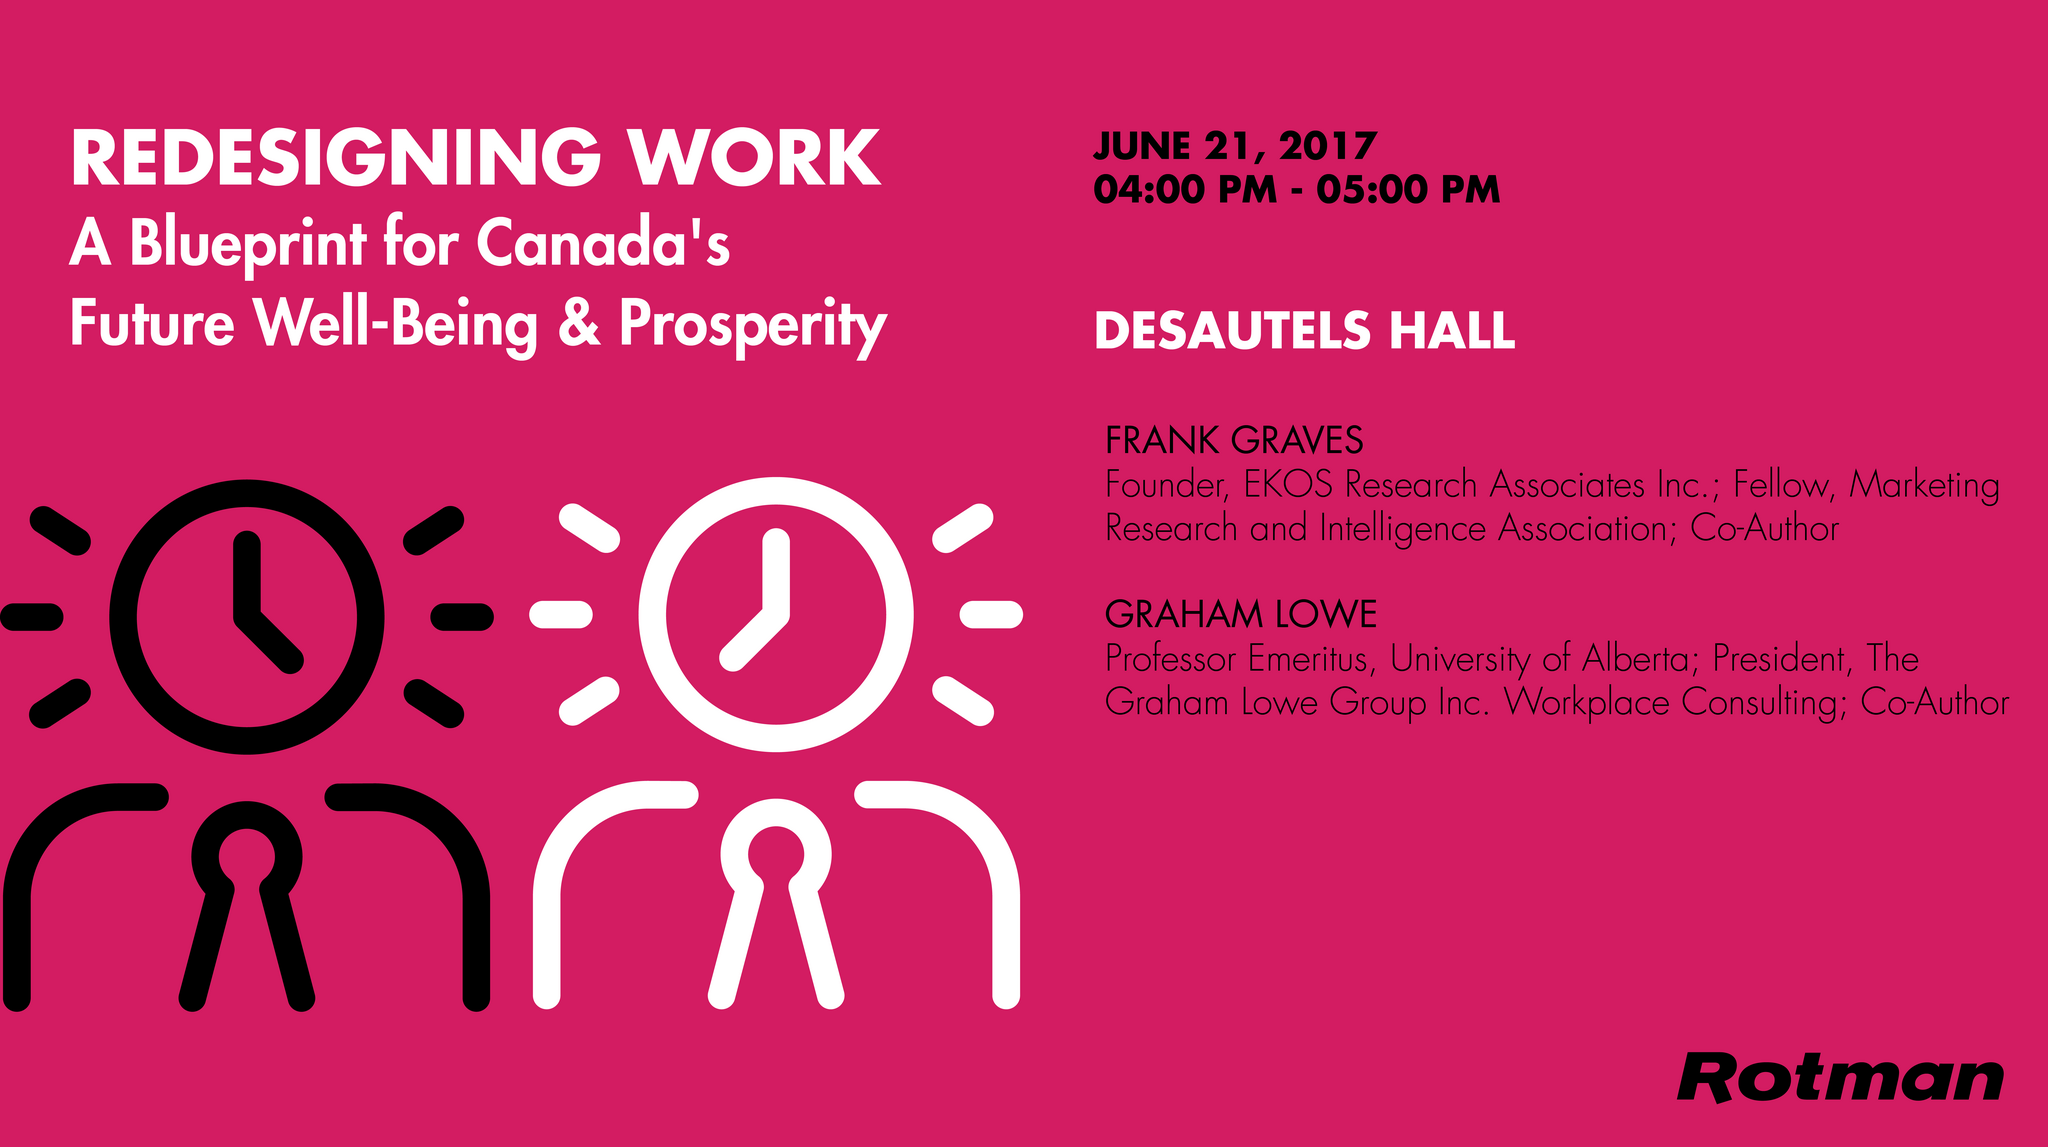 Frank graves graham lowe on redesigning work a blueprint for frank graves graham lowe on redesigning work a blueprint for canadas future well being and prosperity malvernweather Images